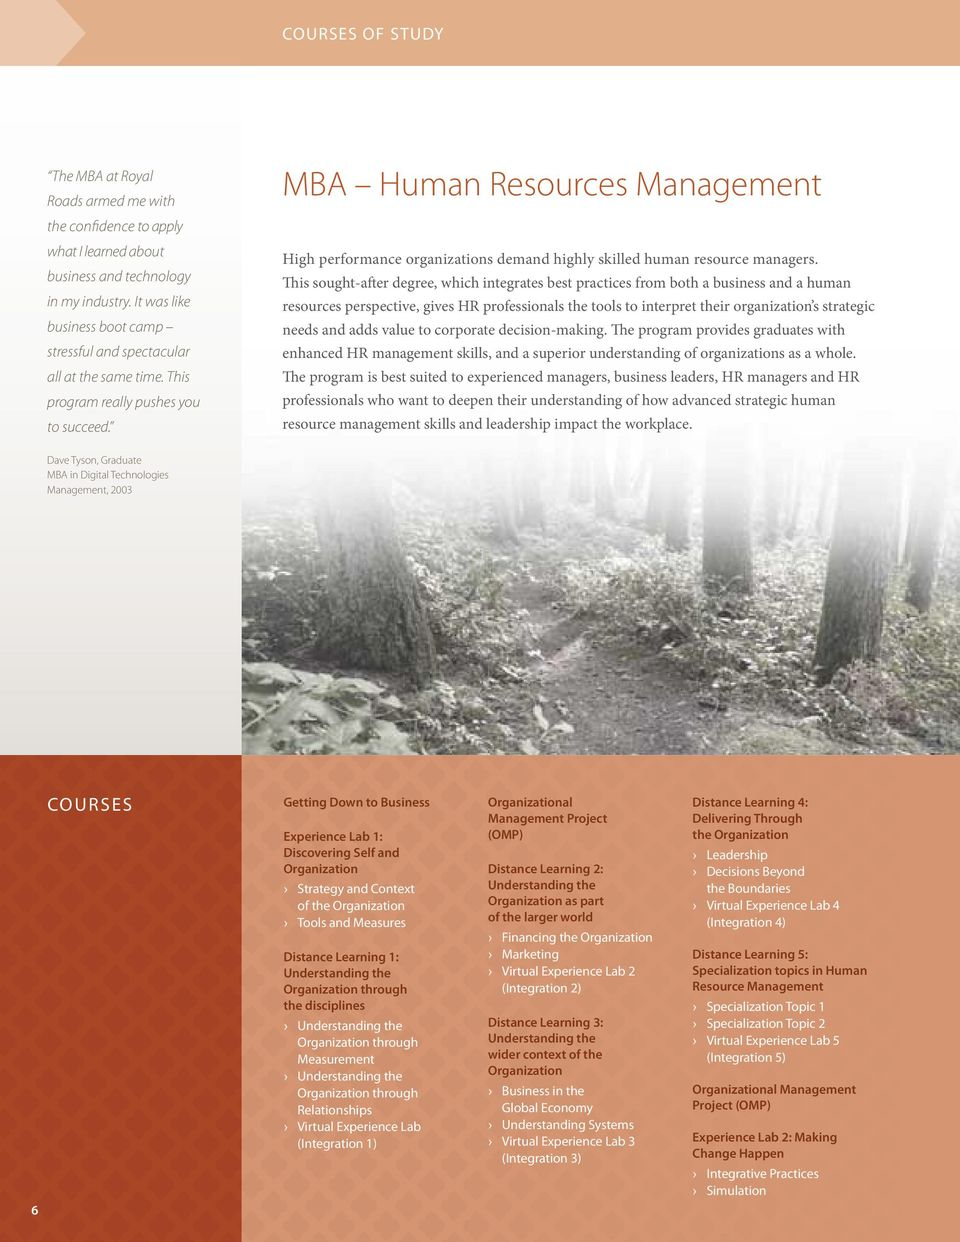 MBA Human Resources Management High performance organizations demand highly skilled human resource managers.